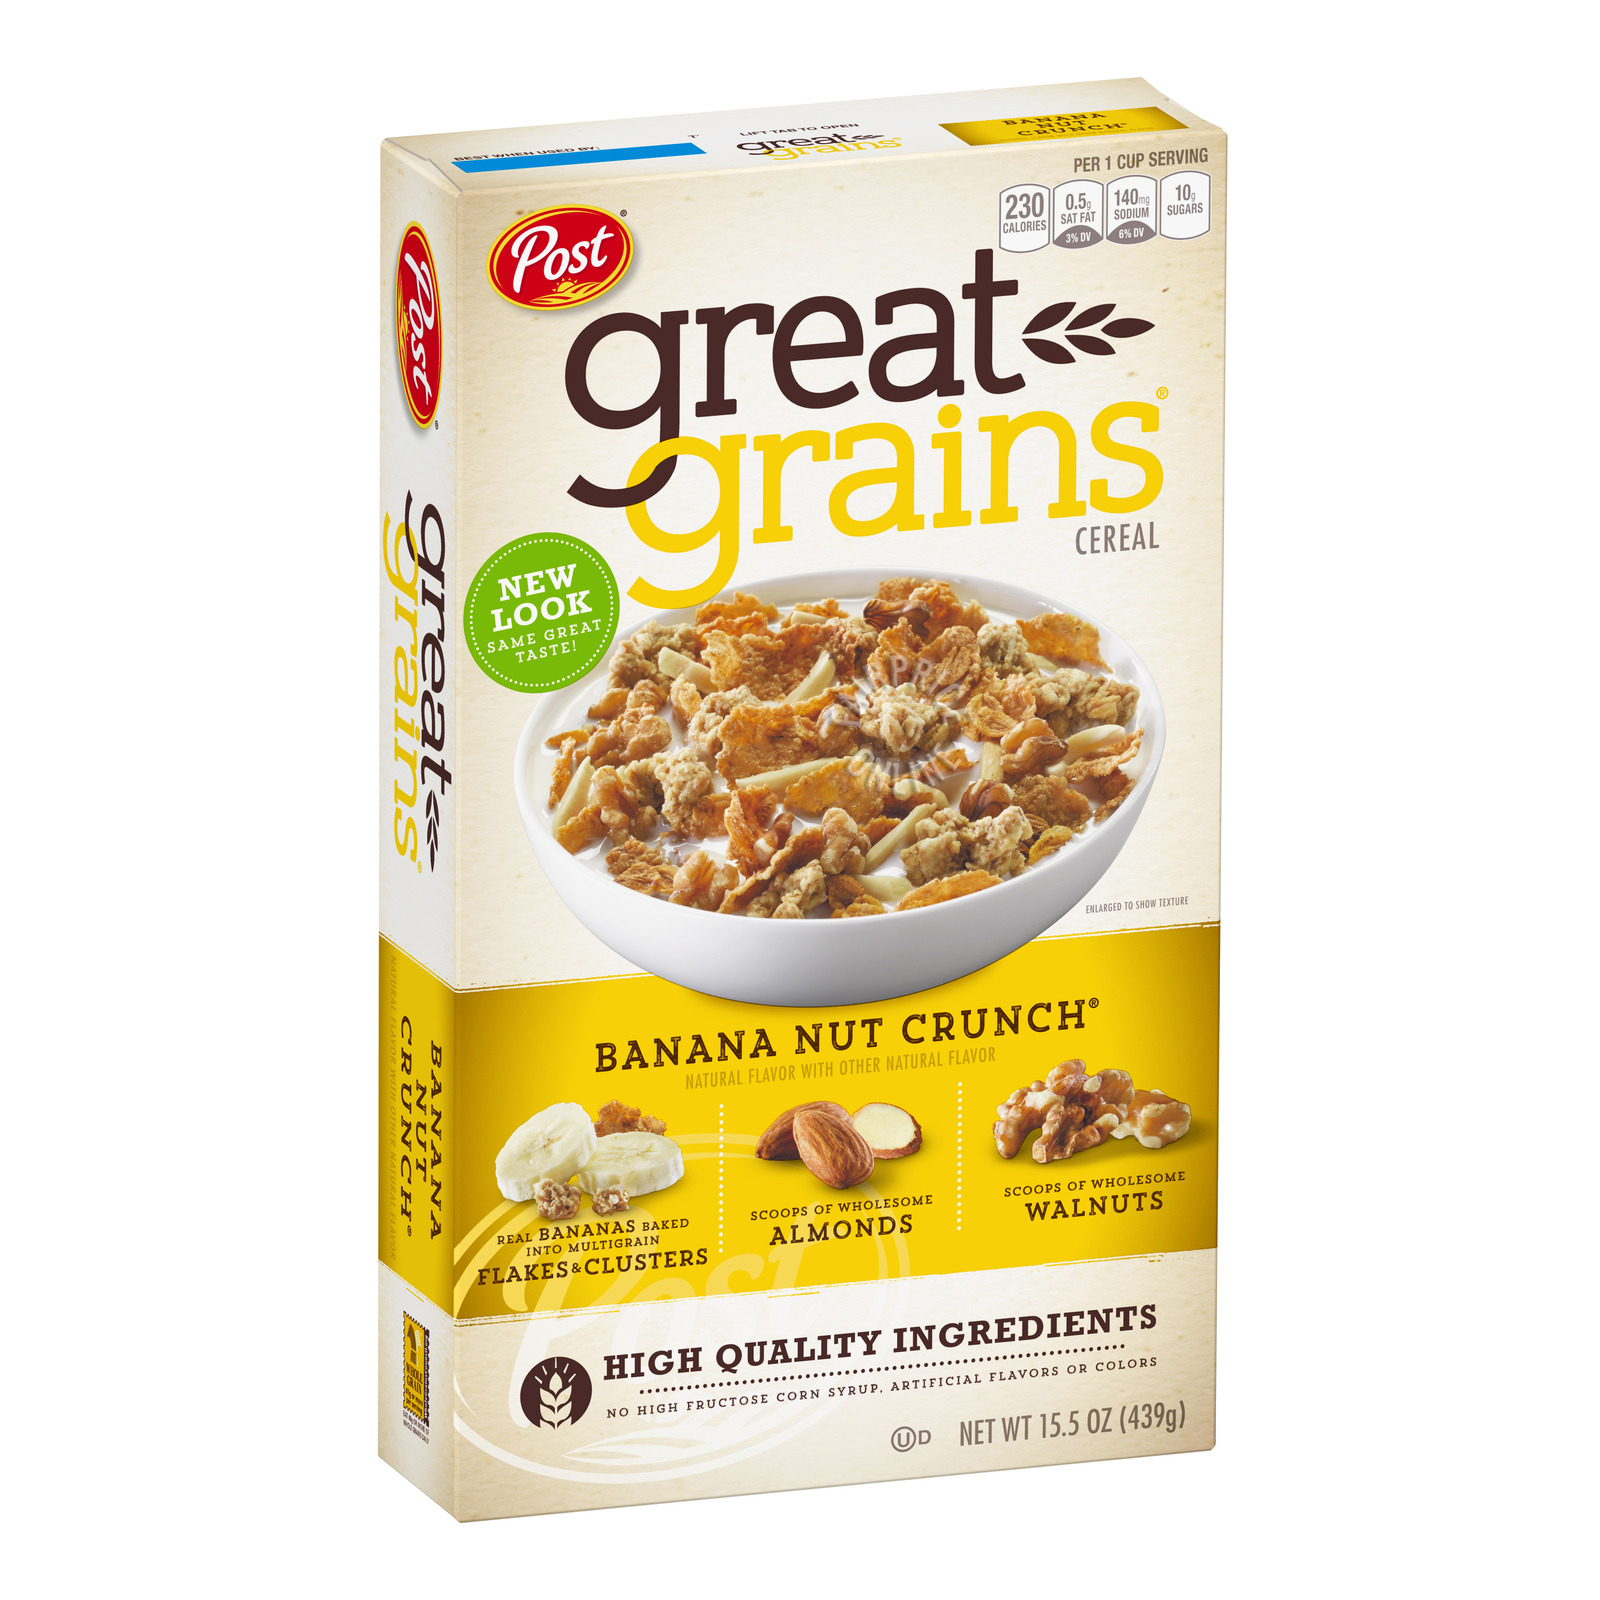 Post Great Grains Cereal - Banana Nut Crunch